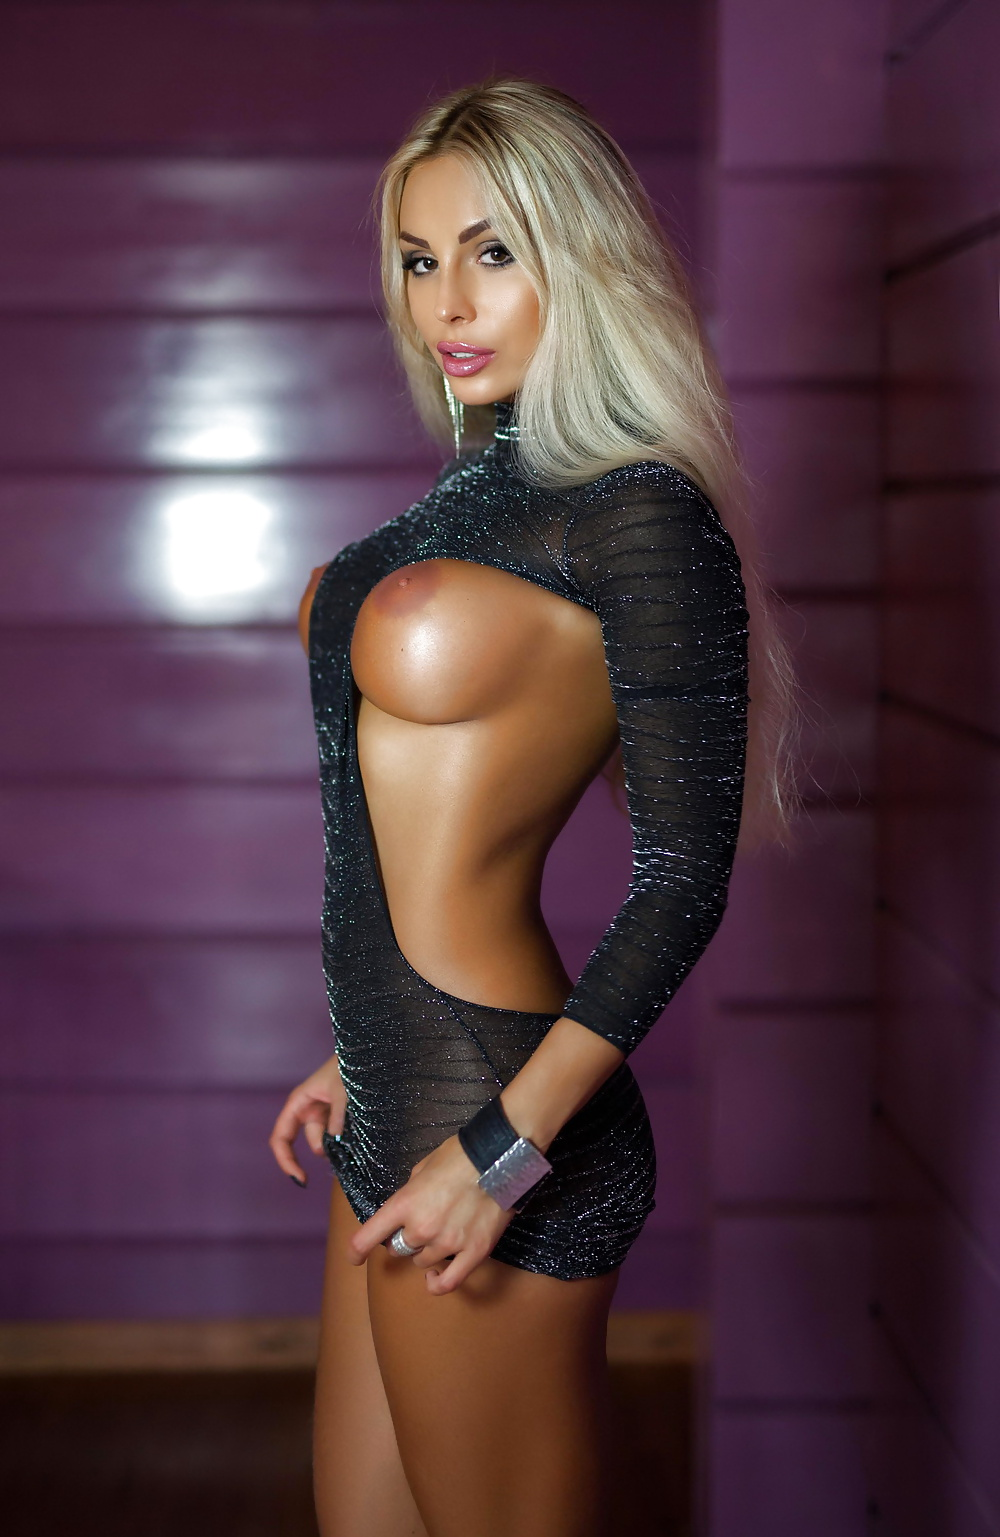 Blonde Bimbo - Marya (53/54)